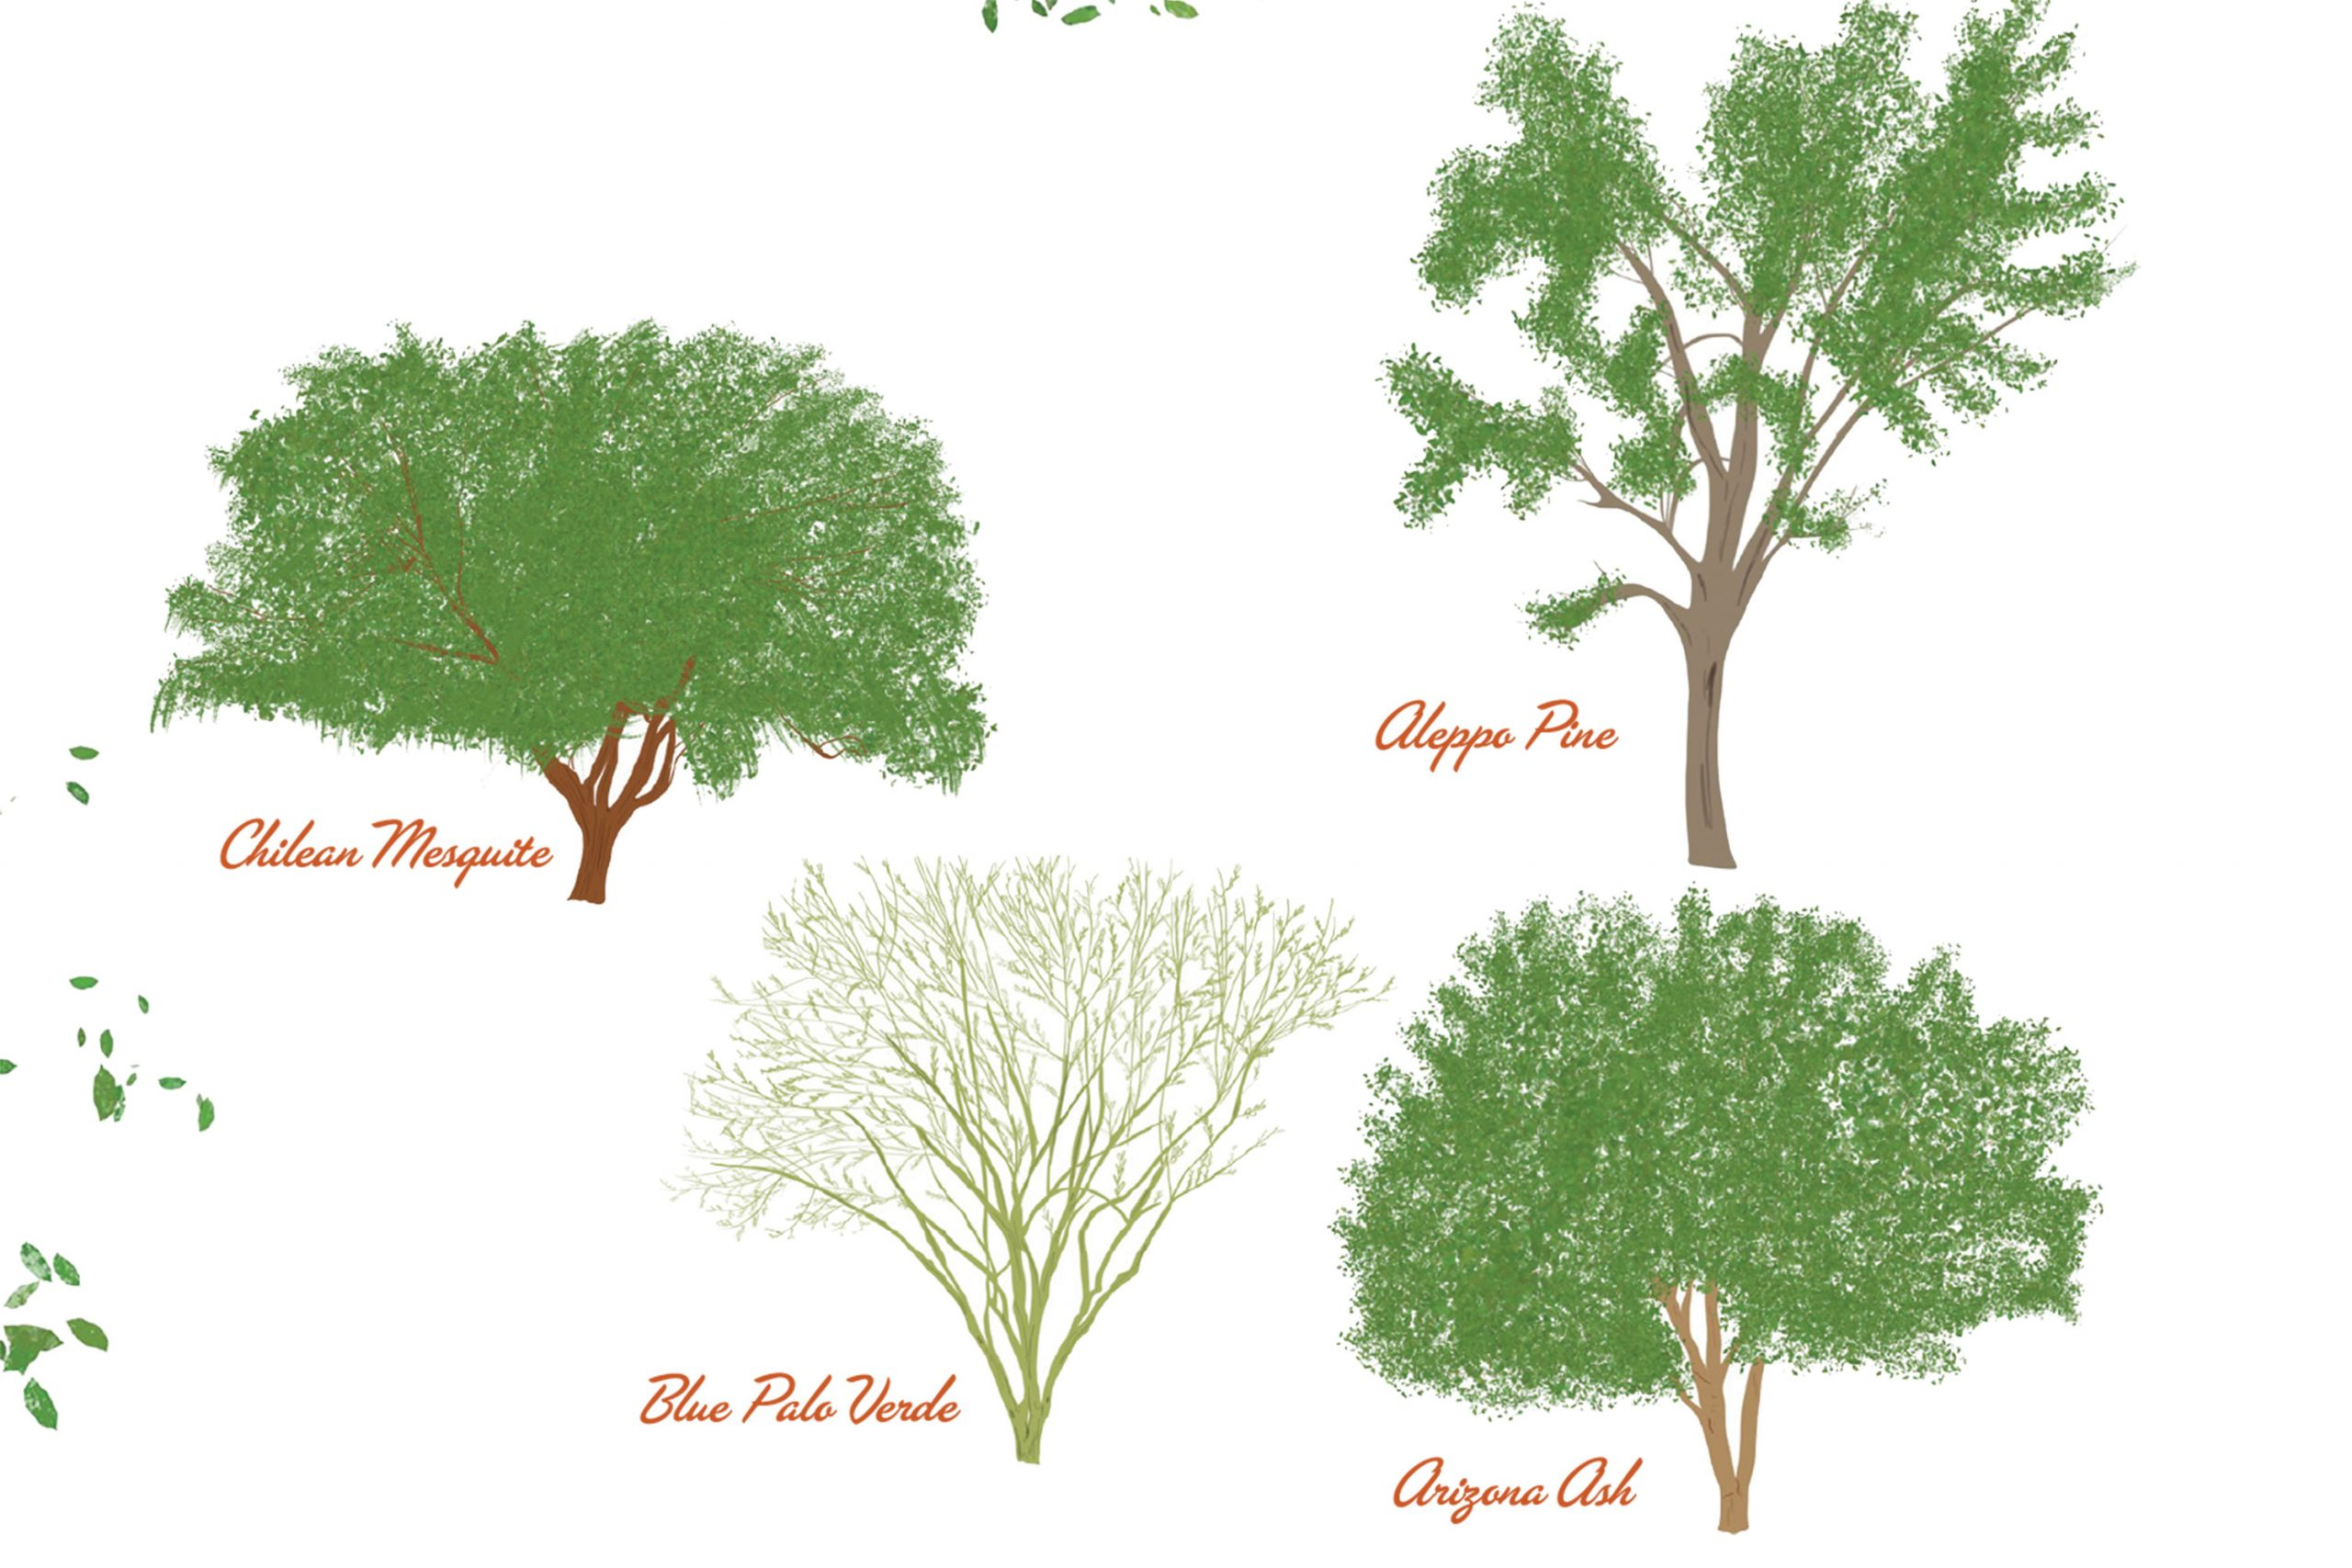 These are among the most widely planted and recognizable trees in Phoenix.; Illustration by Angela Aragon